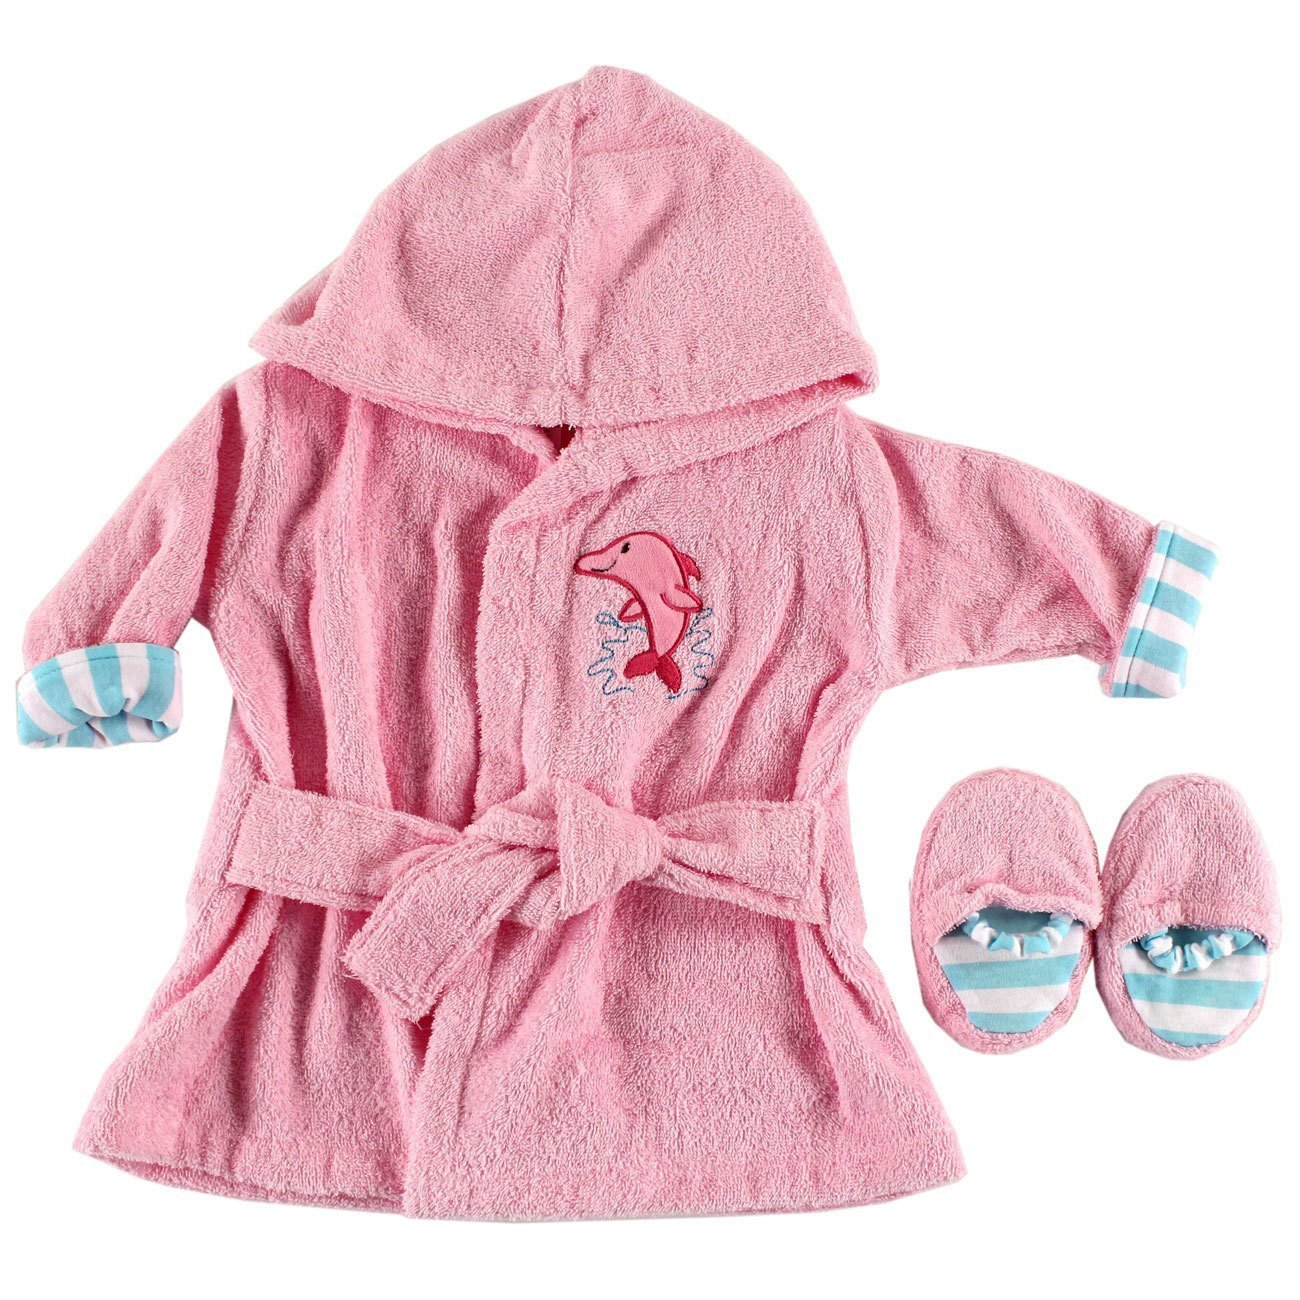 Amazon.com: Luvable Friends Sea Character Bath Robe with Slippers ...